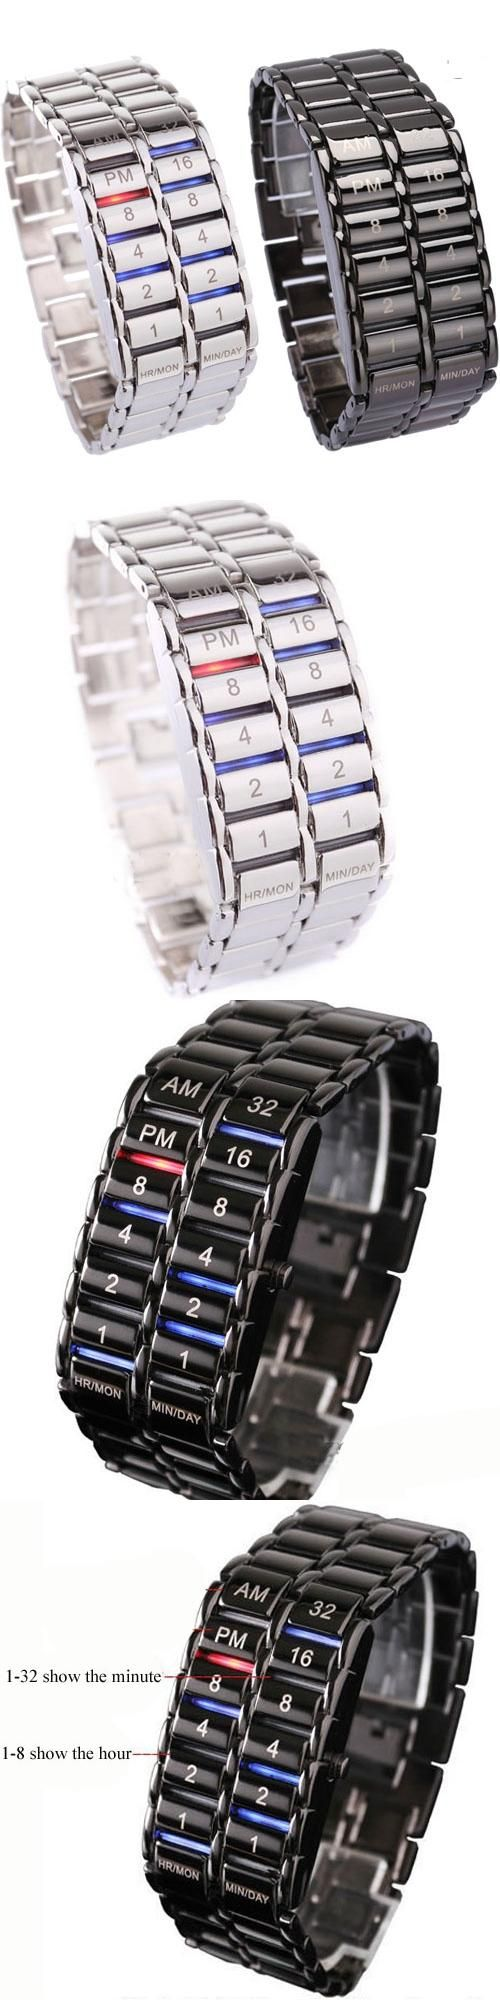 New Fashion Cool Volcanic Lava Style Iron Faceless Binary LED Wrist Watches for Man Black / Silver